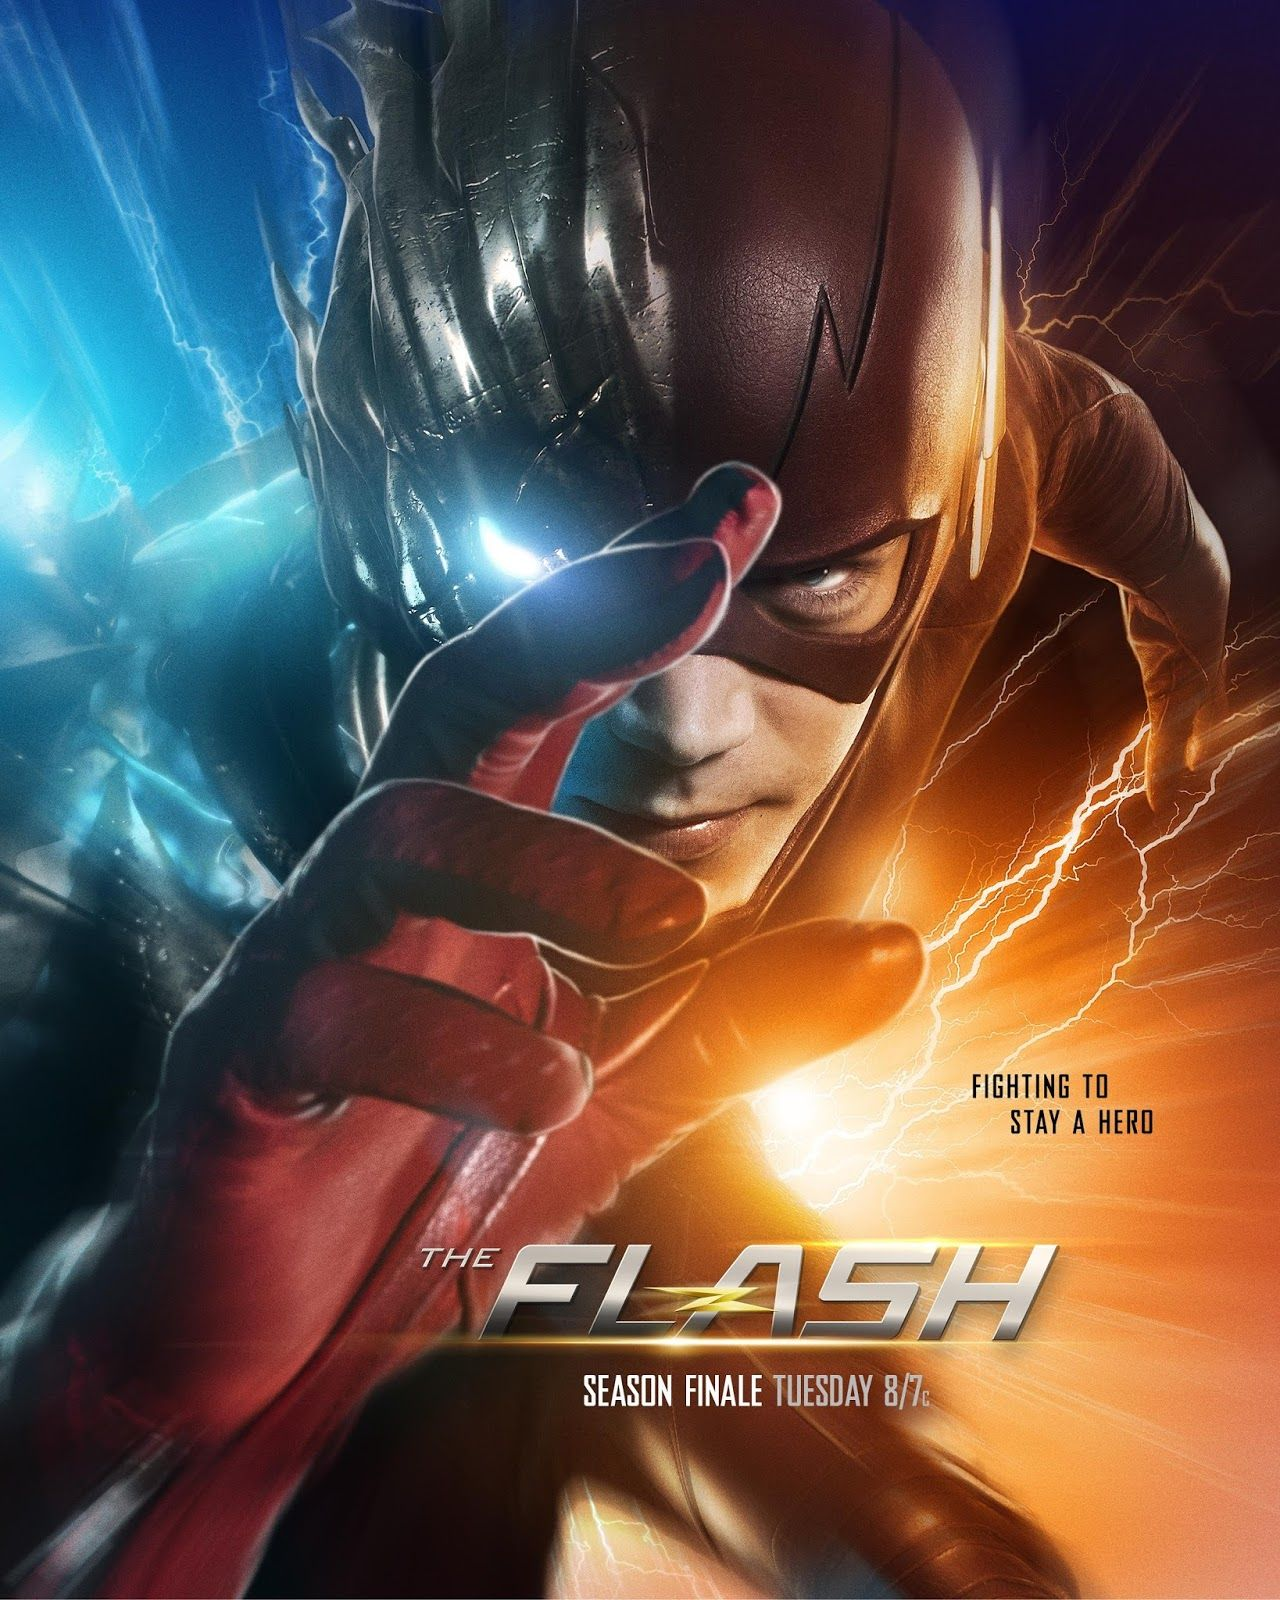 Uitgelezene The Flash Poster: 30+ Printable Posters (Free Download) | Flash OW-87